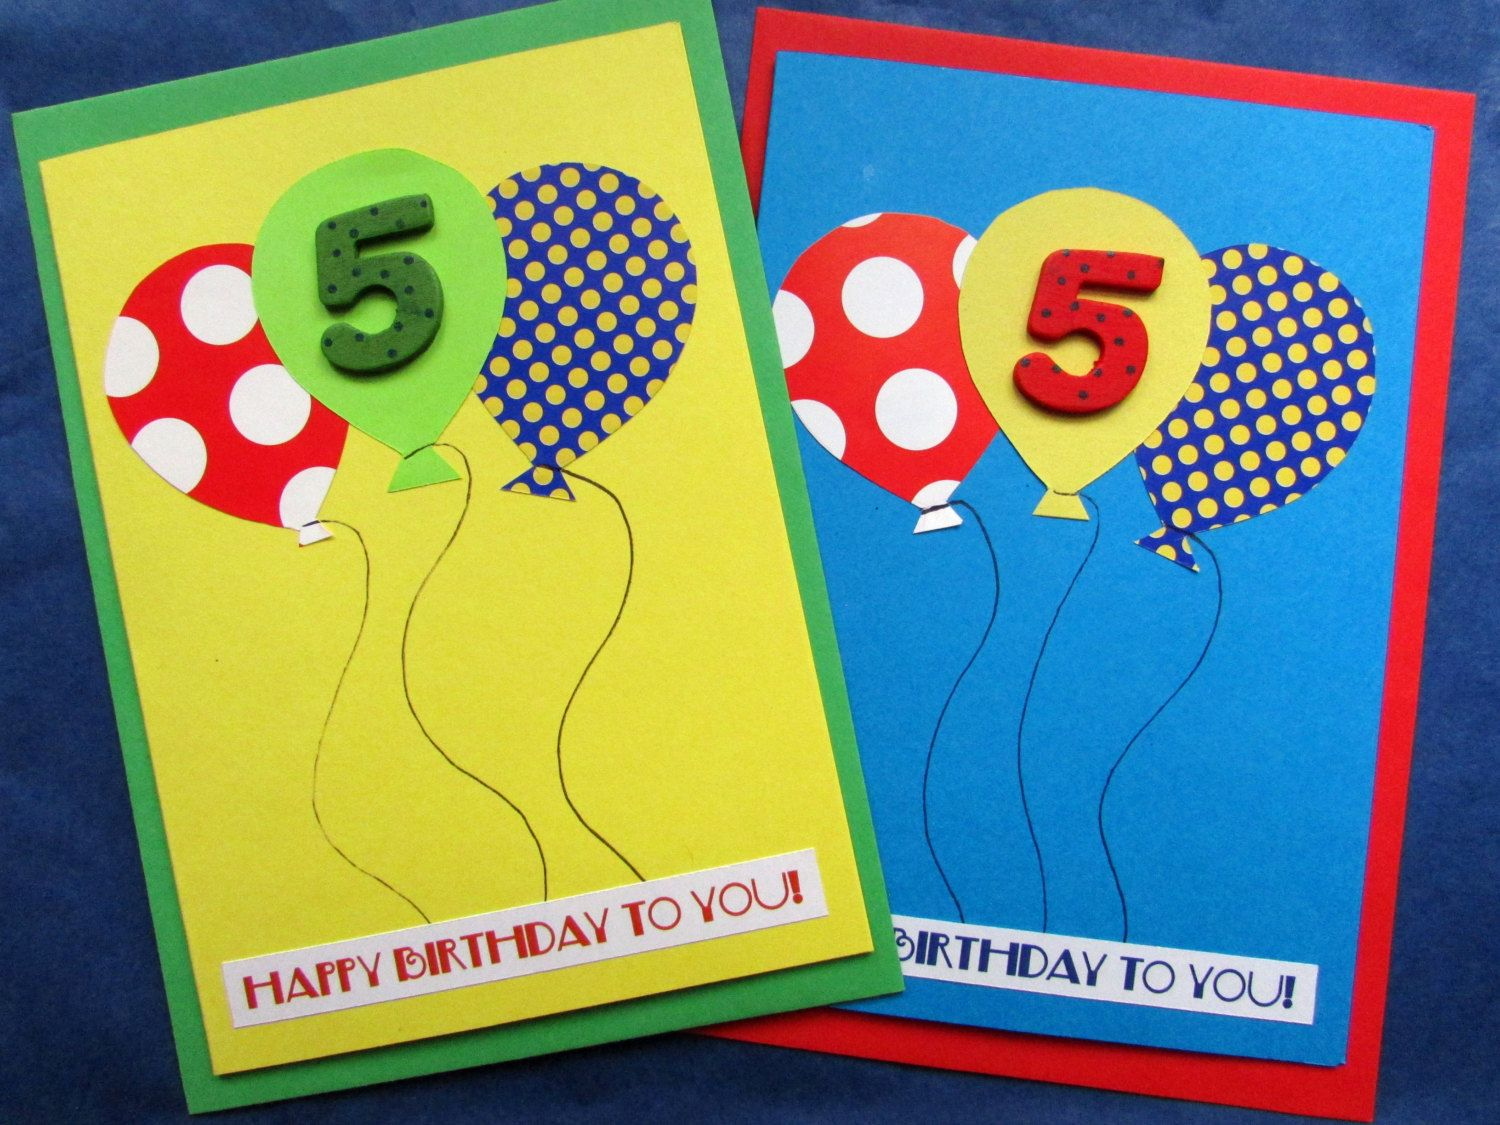 5 year old boy birthday card ideas ; 183ab4beb3fad9bcd27e7c28f7d9cef4